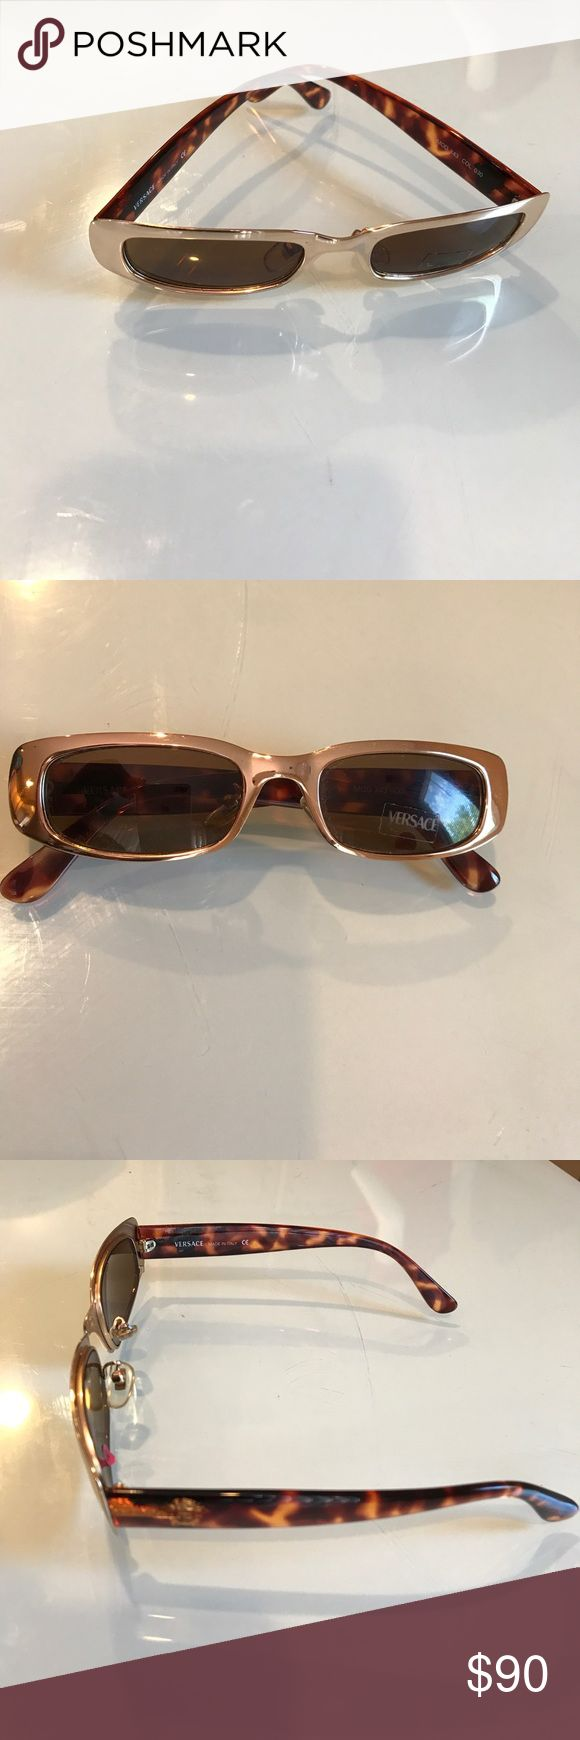 Versace Sunglasses Never Worn Excellent Condition Versace Sunglasses Never Worn Excellent Condition gold frame with turquoise shell arms. No scratches on eye glass lens. Designer Versace sticker still on frame. Versace designer emblem on arms of Sunglasses. Versace named engrave inside sunglasses. Versace Accessories Sunglasses